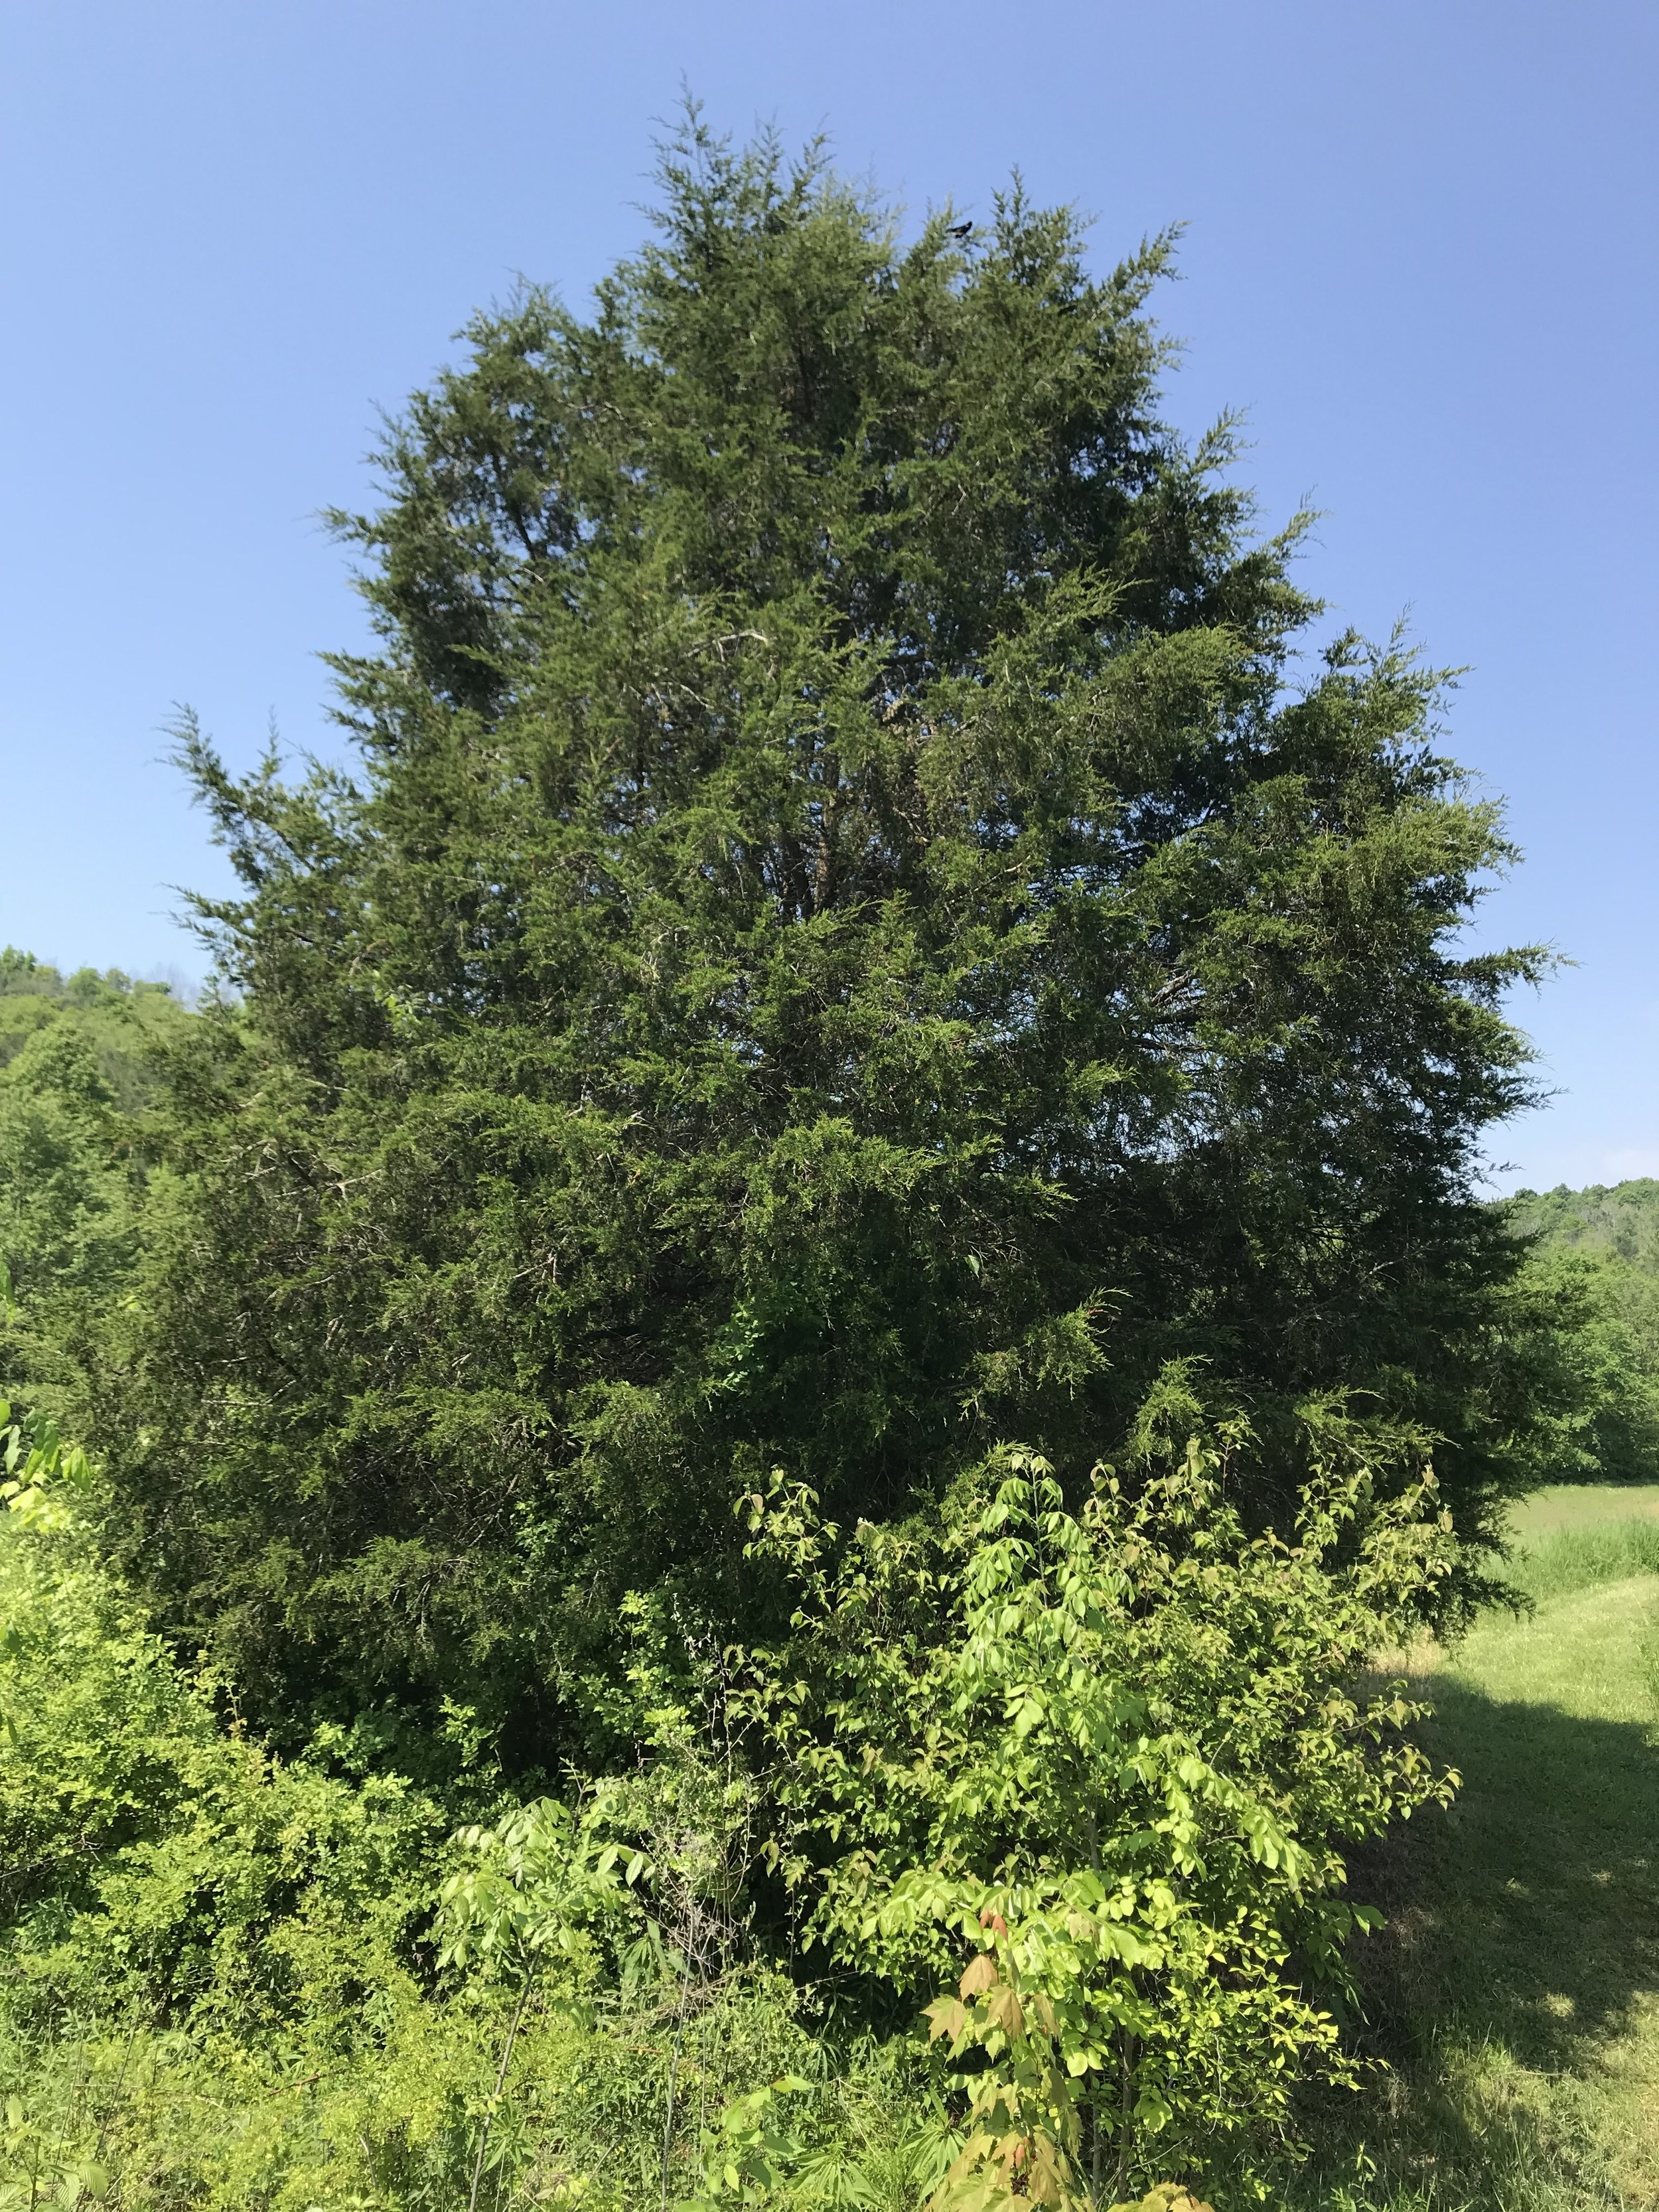 The Eastern Red Cedar (Juniperus virginiana) that we harvested from. Photo: Erika Galentin